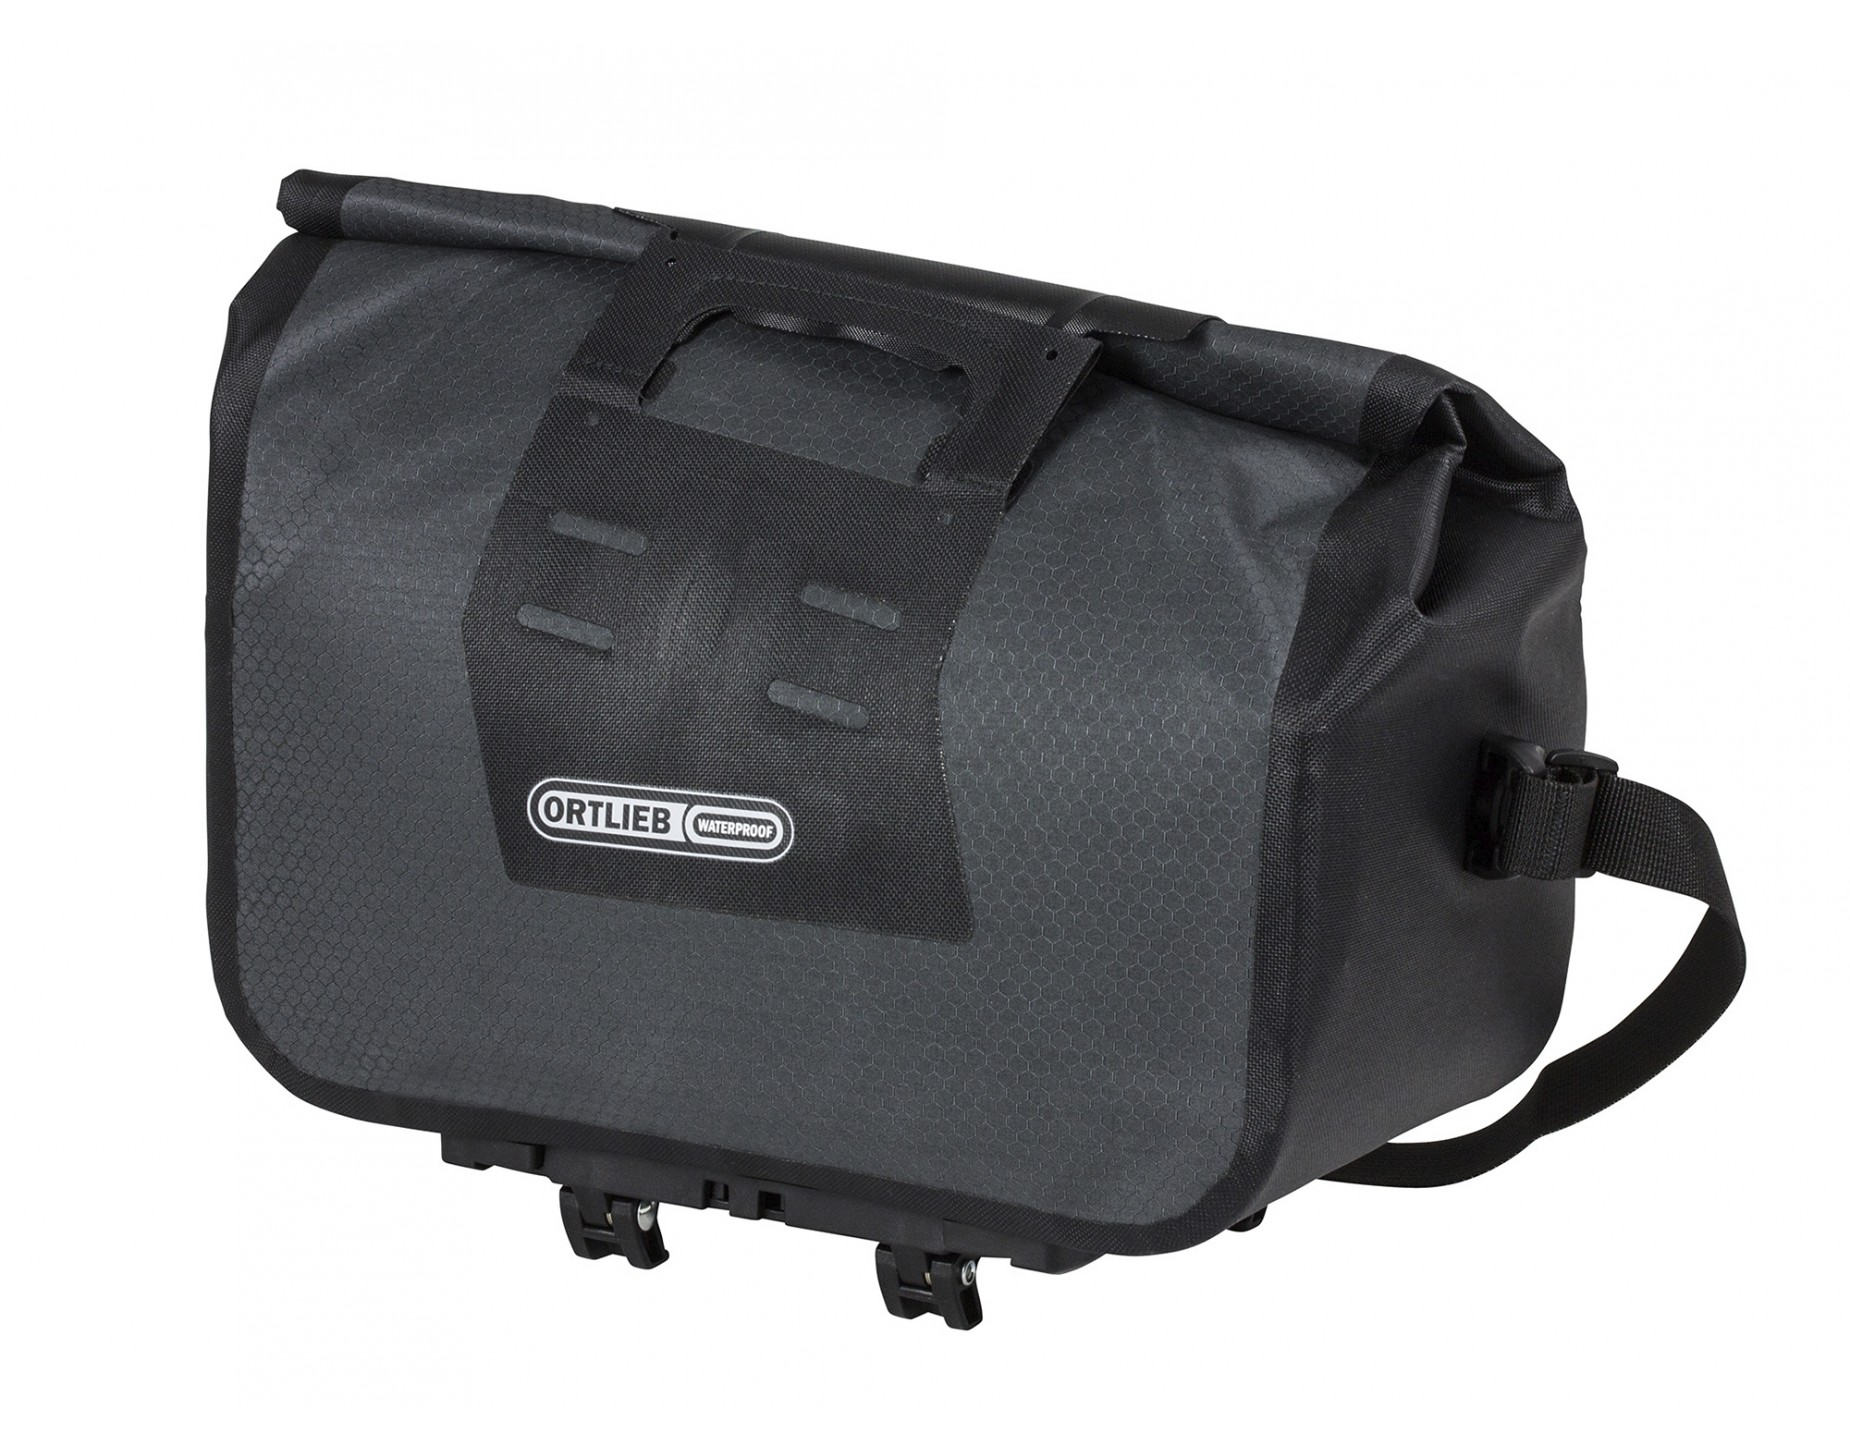 Ortlieb City Trunk Bag Rc Rack Pack With Rack Lock Adapter